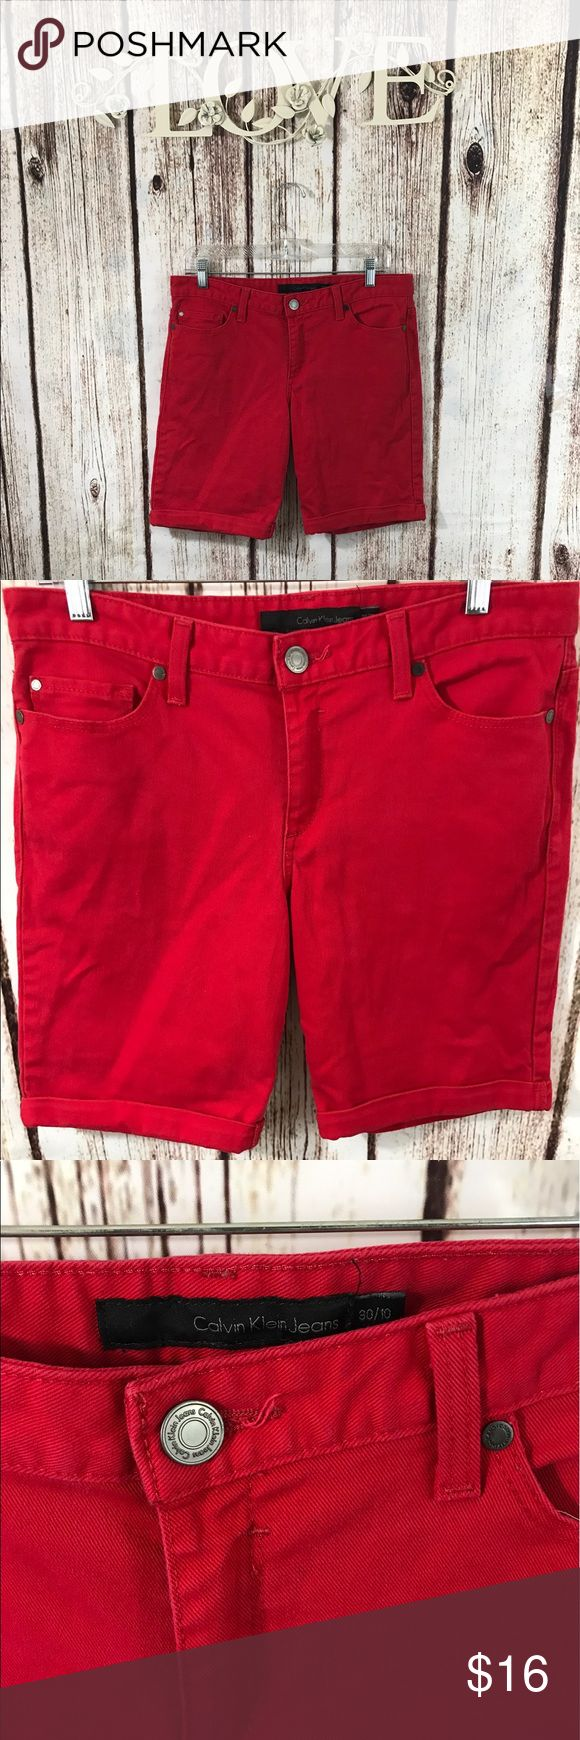 Ck fire engine red Bermuda shorts Nice pair of red ck shorts in gods condition size 30-10 Calvin Klein Shorts Bermudas